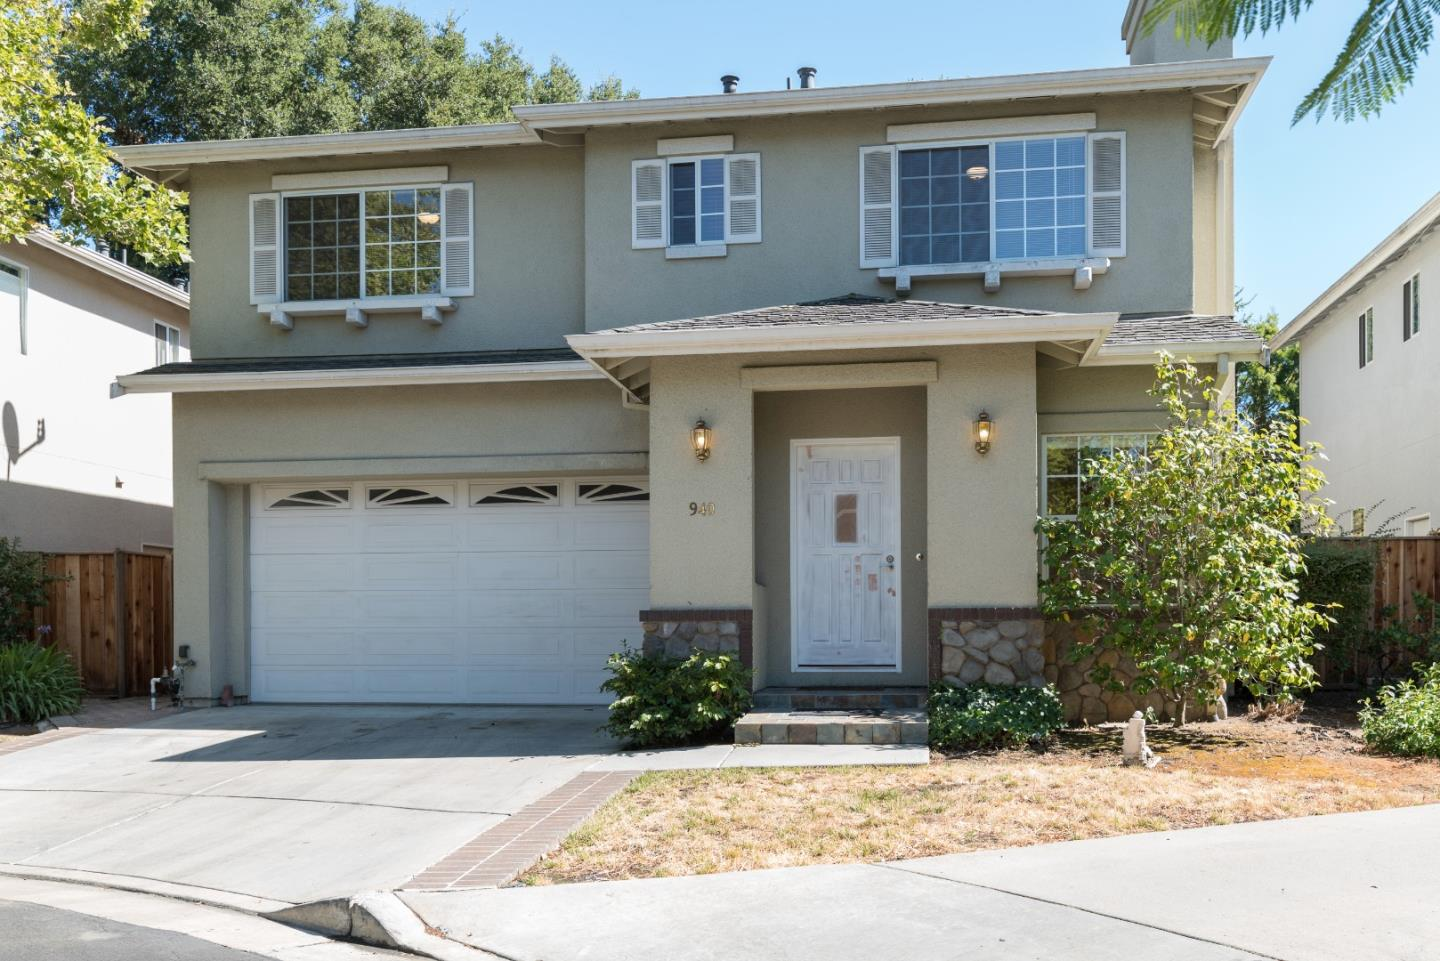 Single Family Home for Rent at 940 Rich Place Mountain View, California 94040 United States